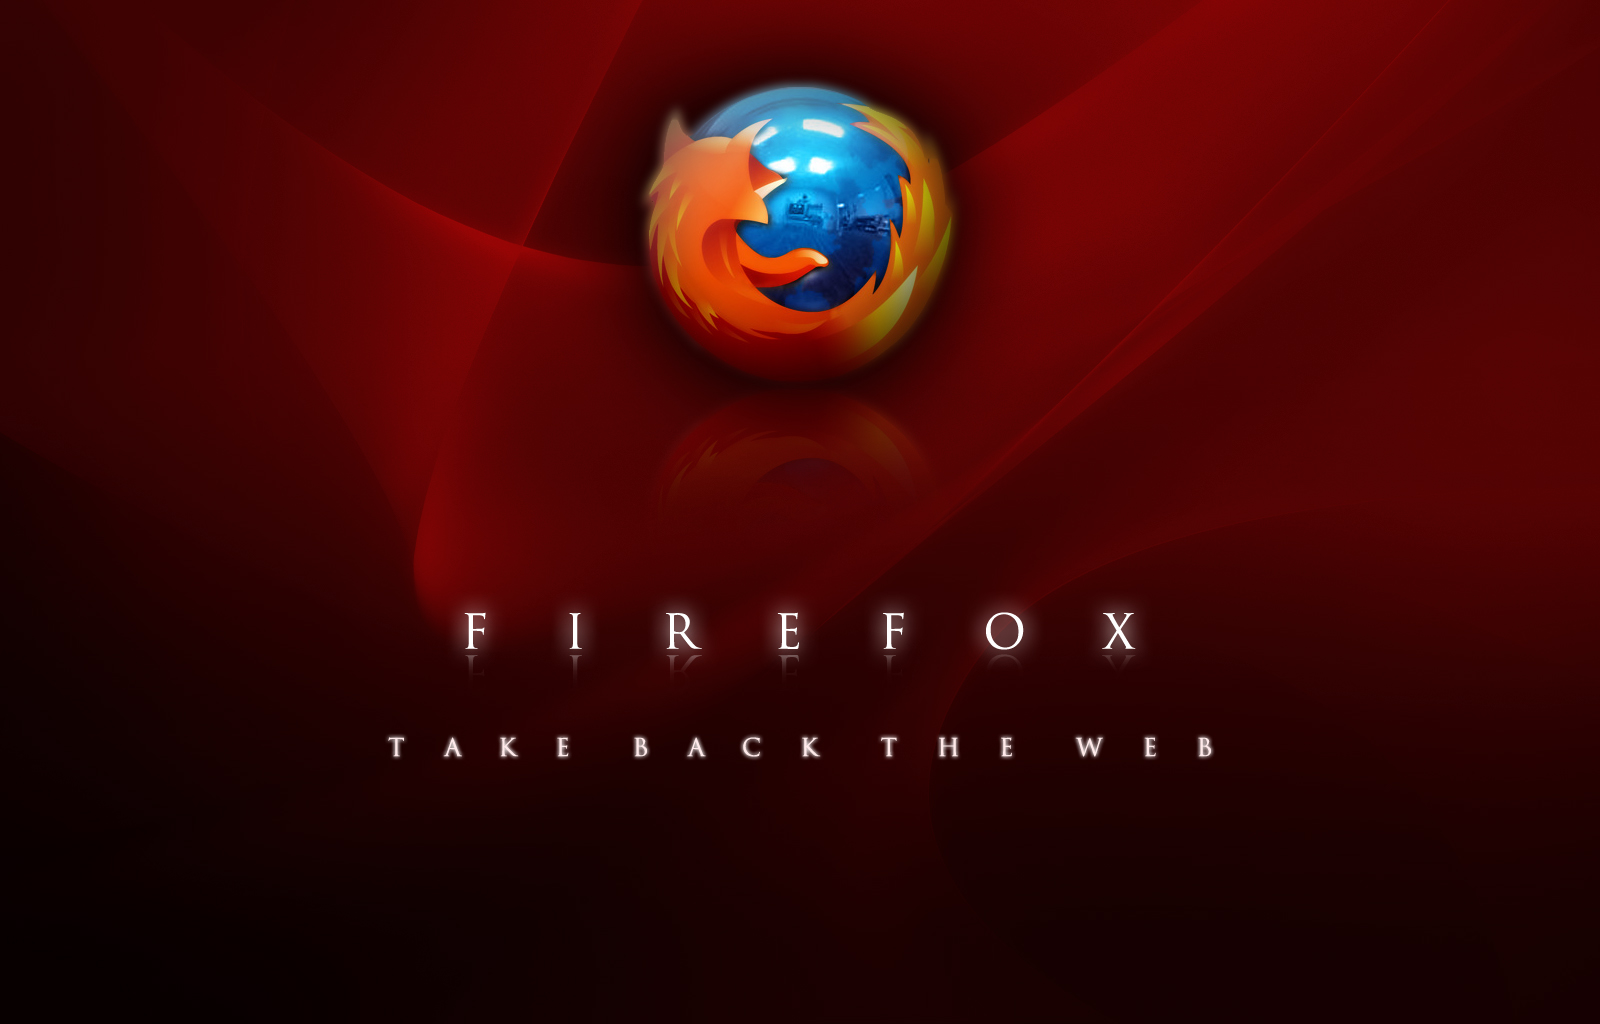 Technology - Firefox Wallpaper